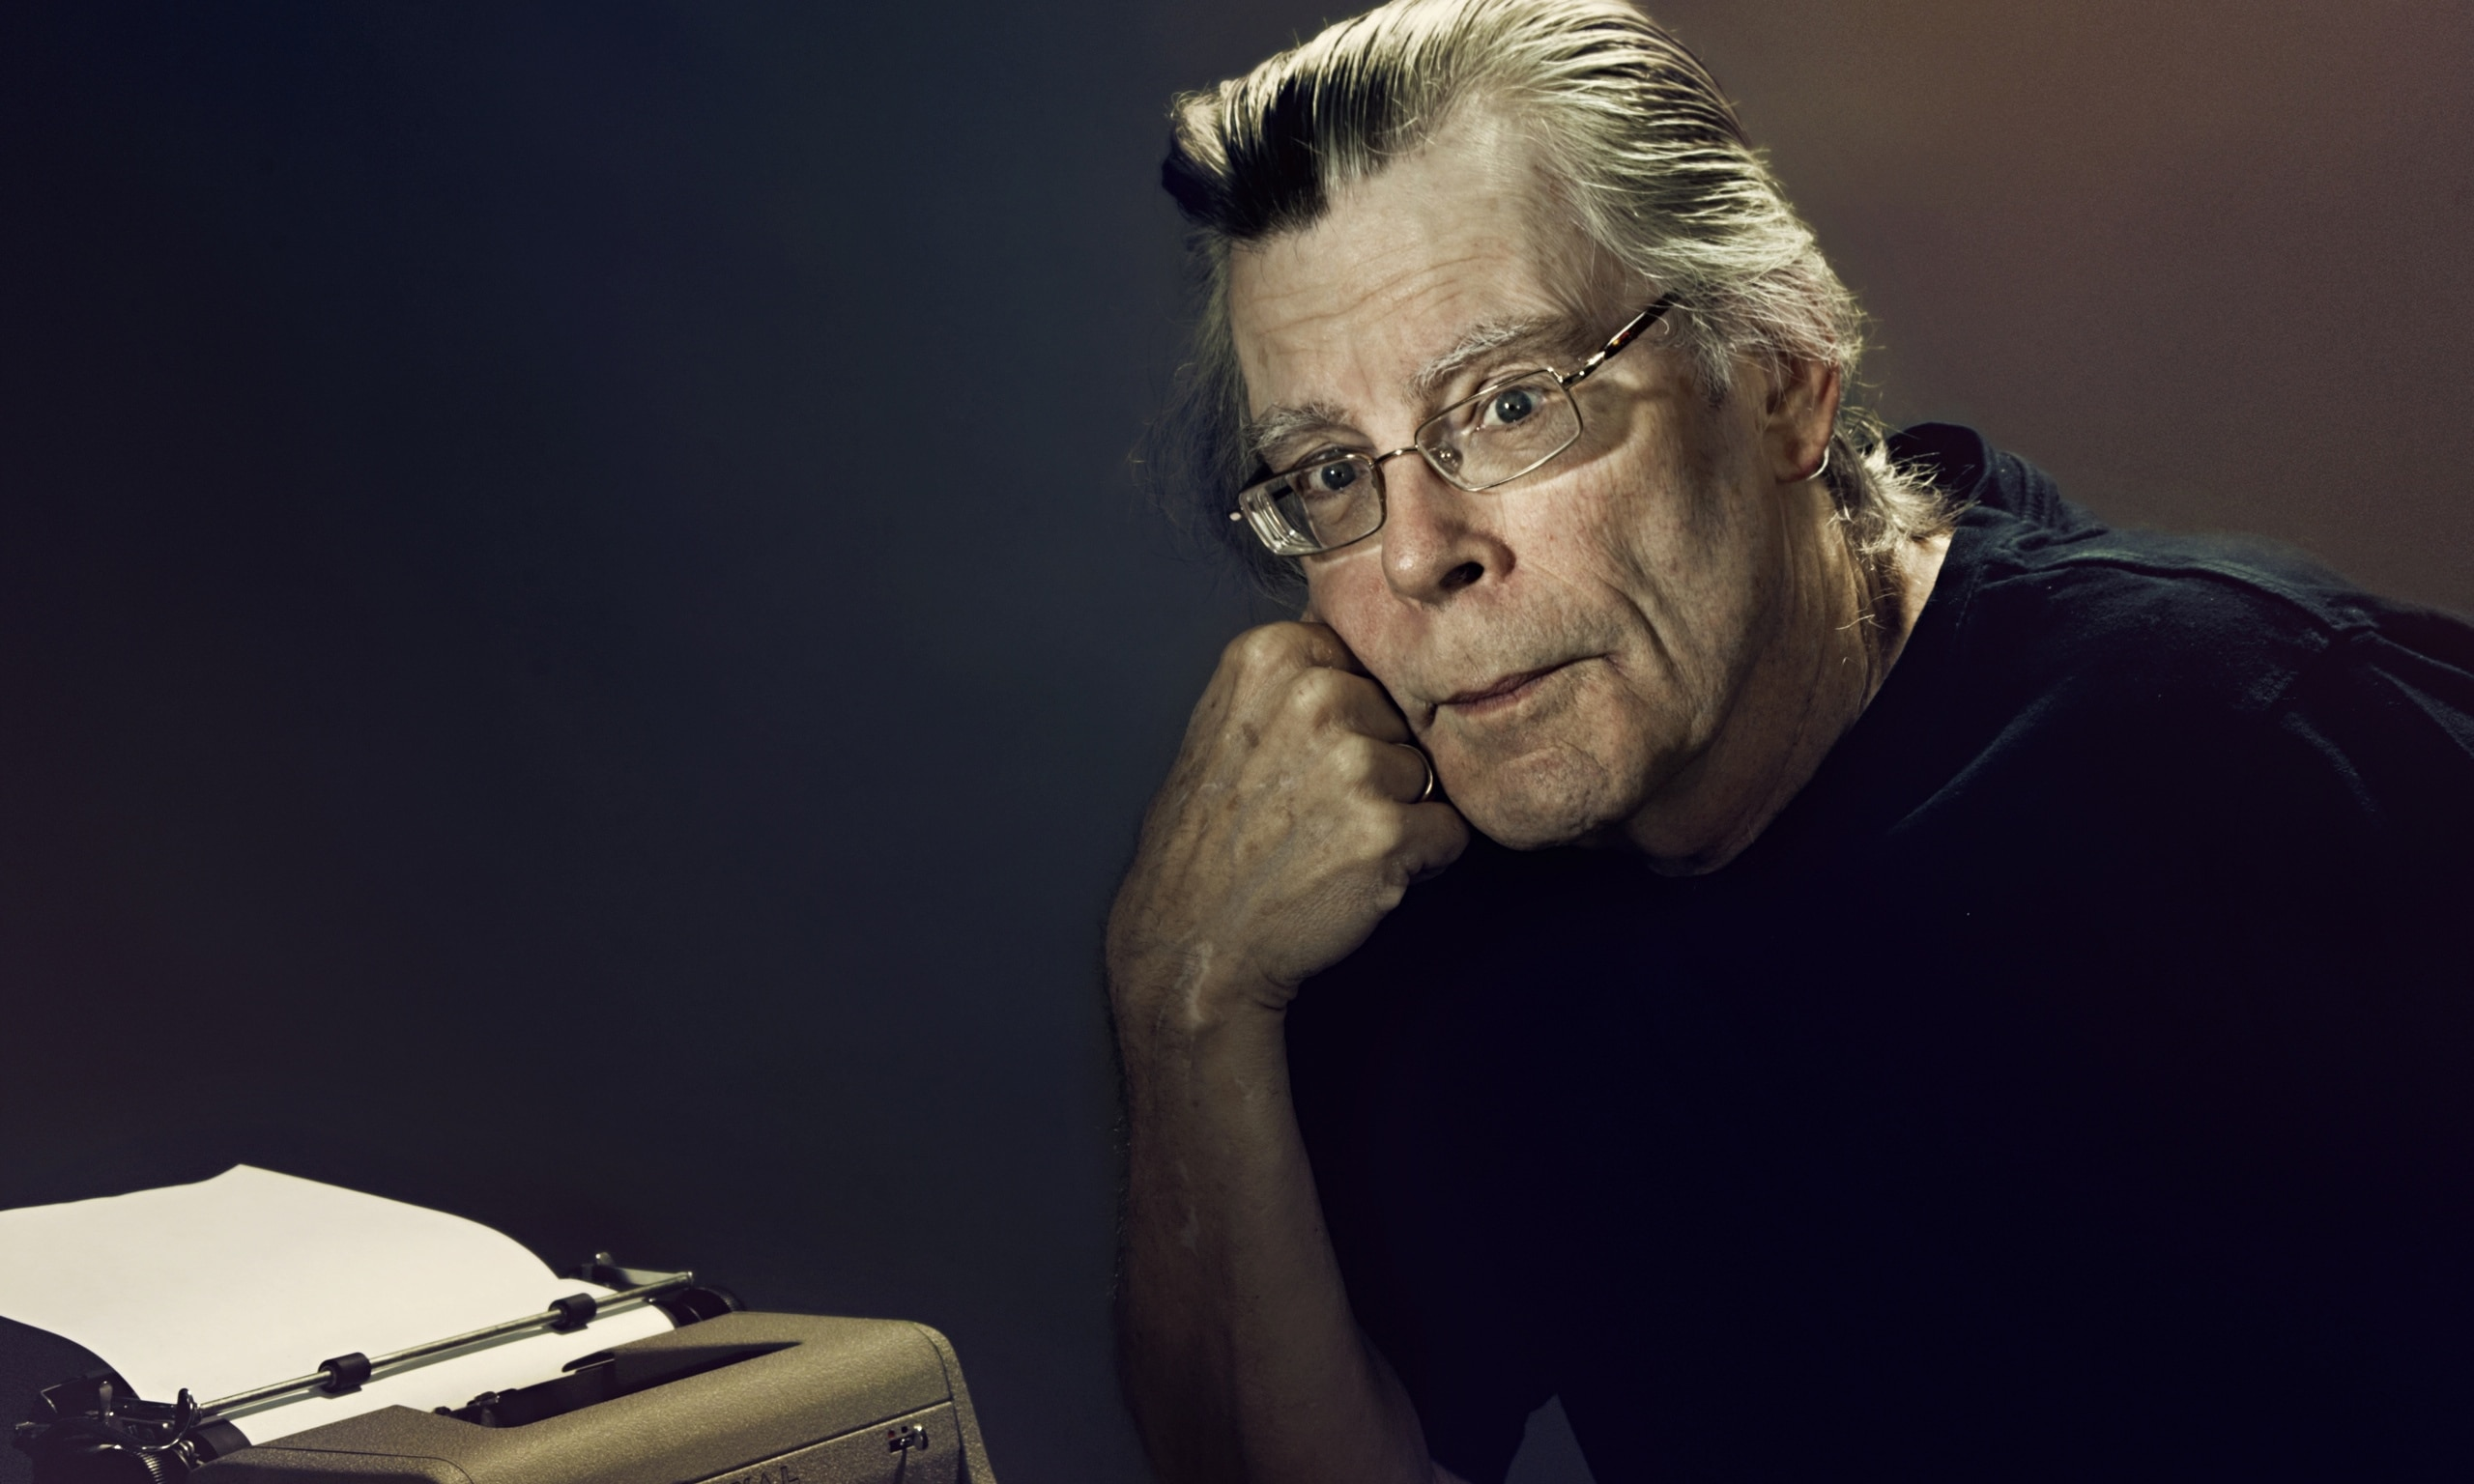 stephan king Stephen edwin king (born september 21, 1947) is an american author of horror, supernatural fiction, suspense, science fiction, and fantasyhis books have sold more than 350 million copies.